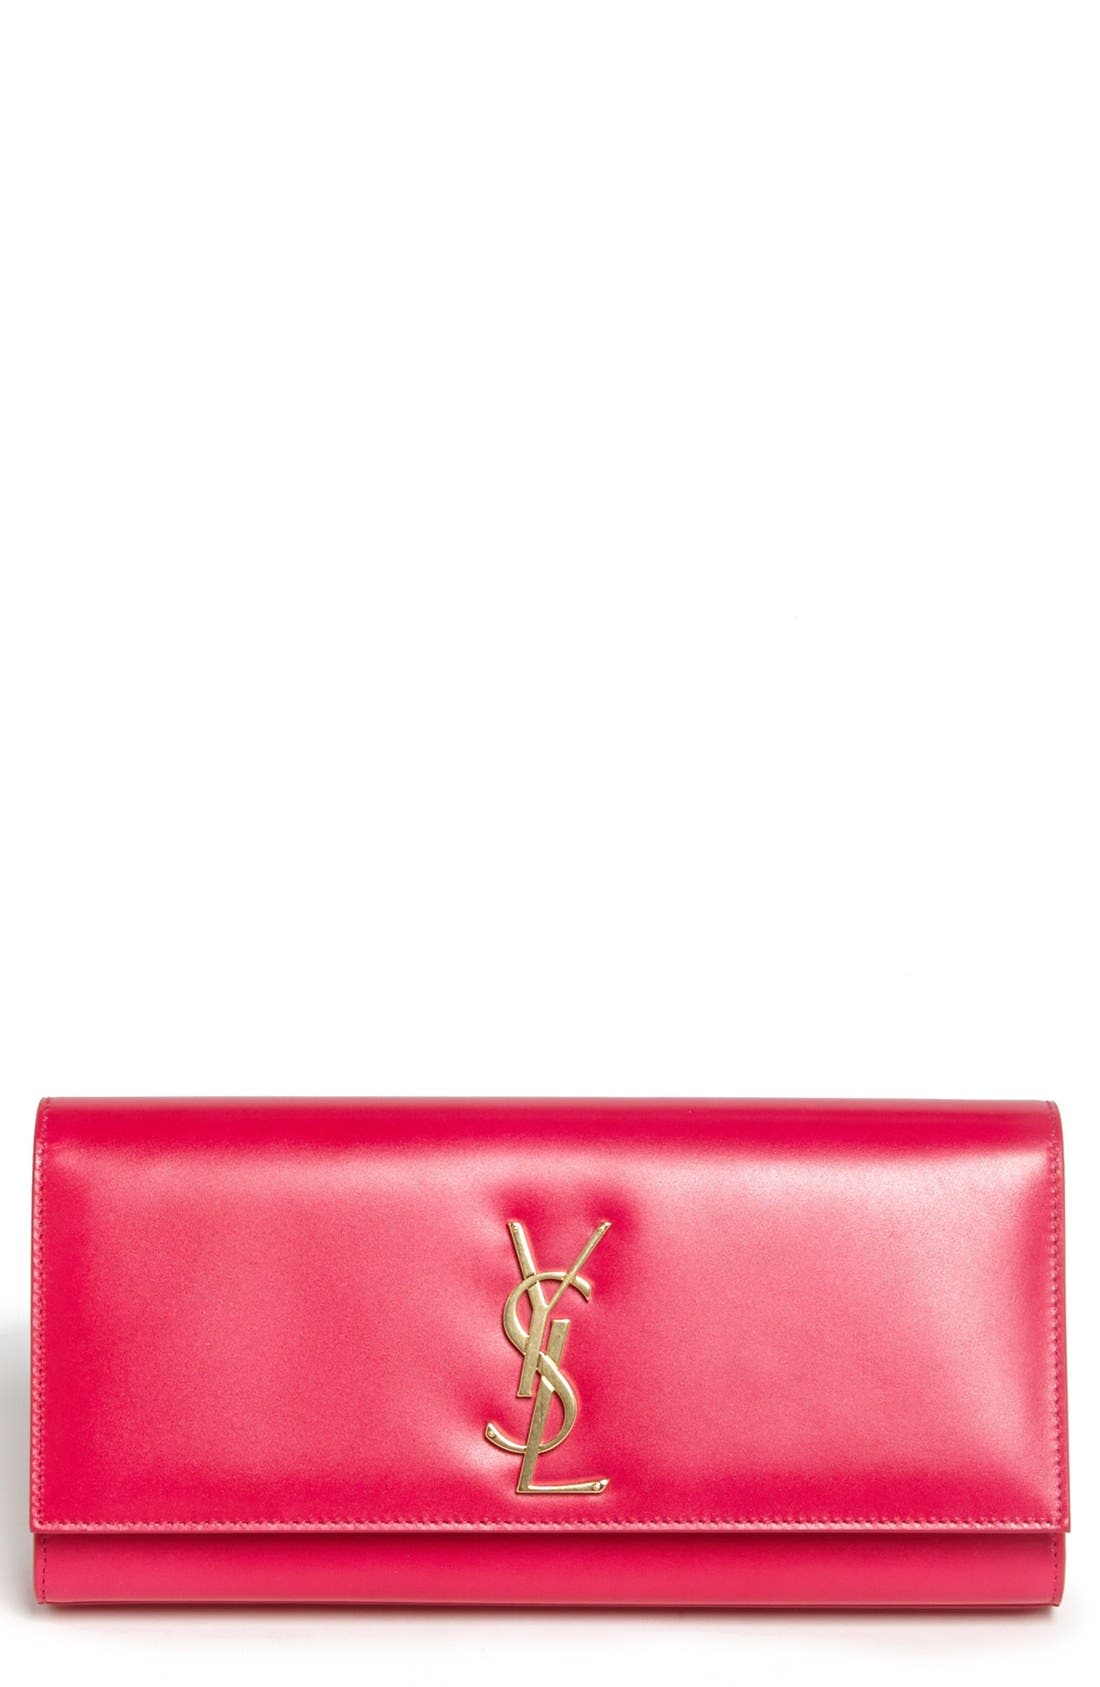 Main Image - Saint Laurent 'Cassandre Monet' Leather Clutch